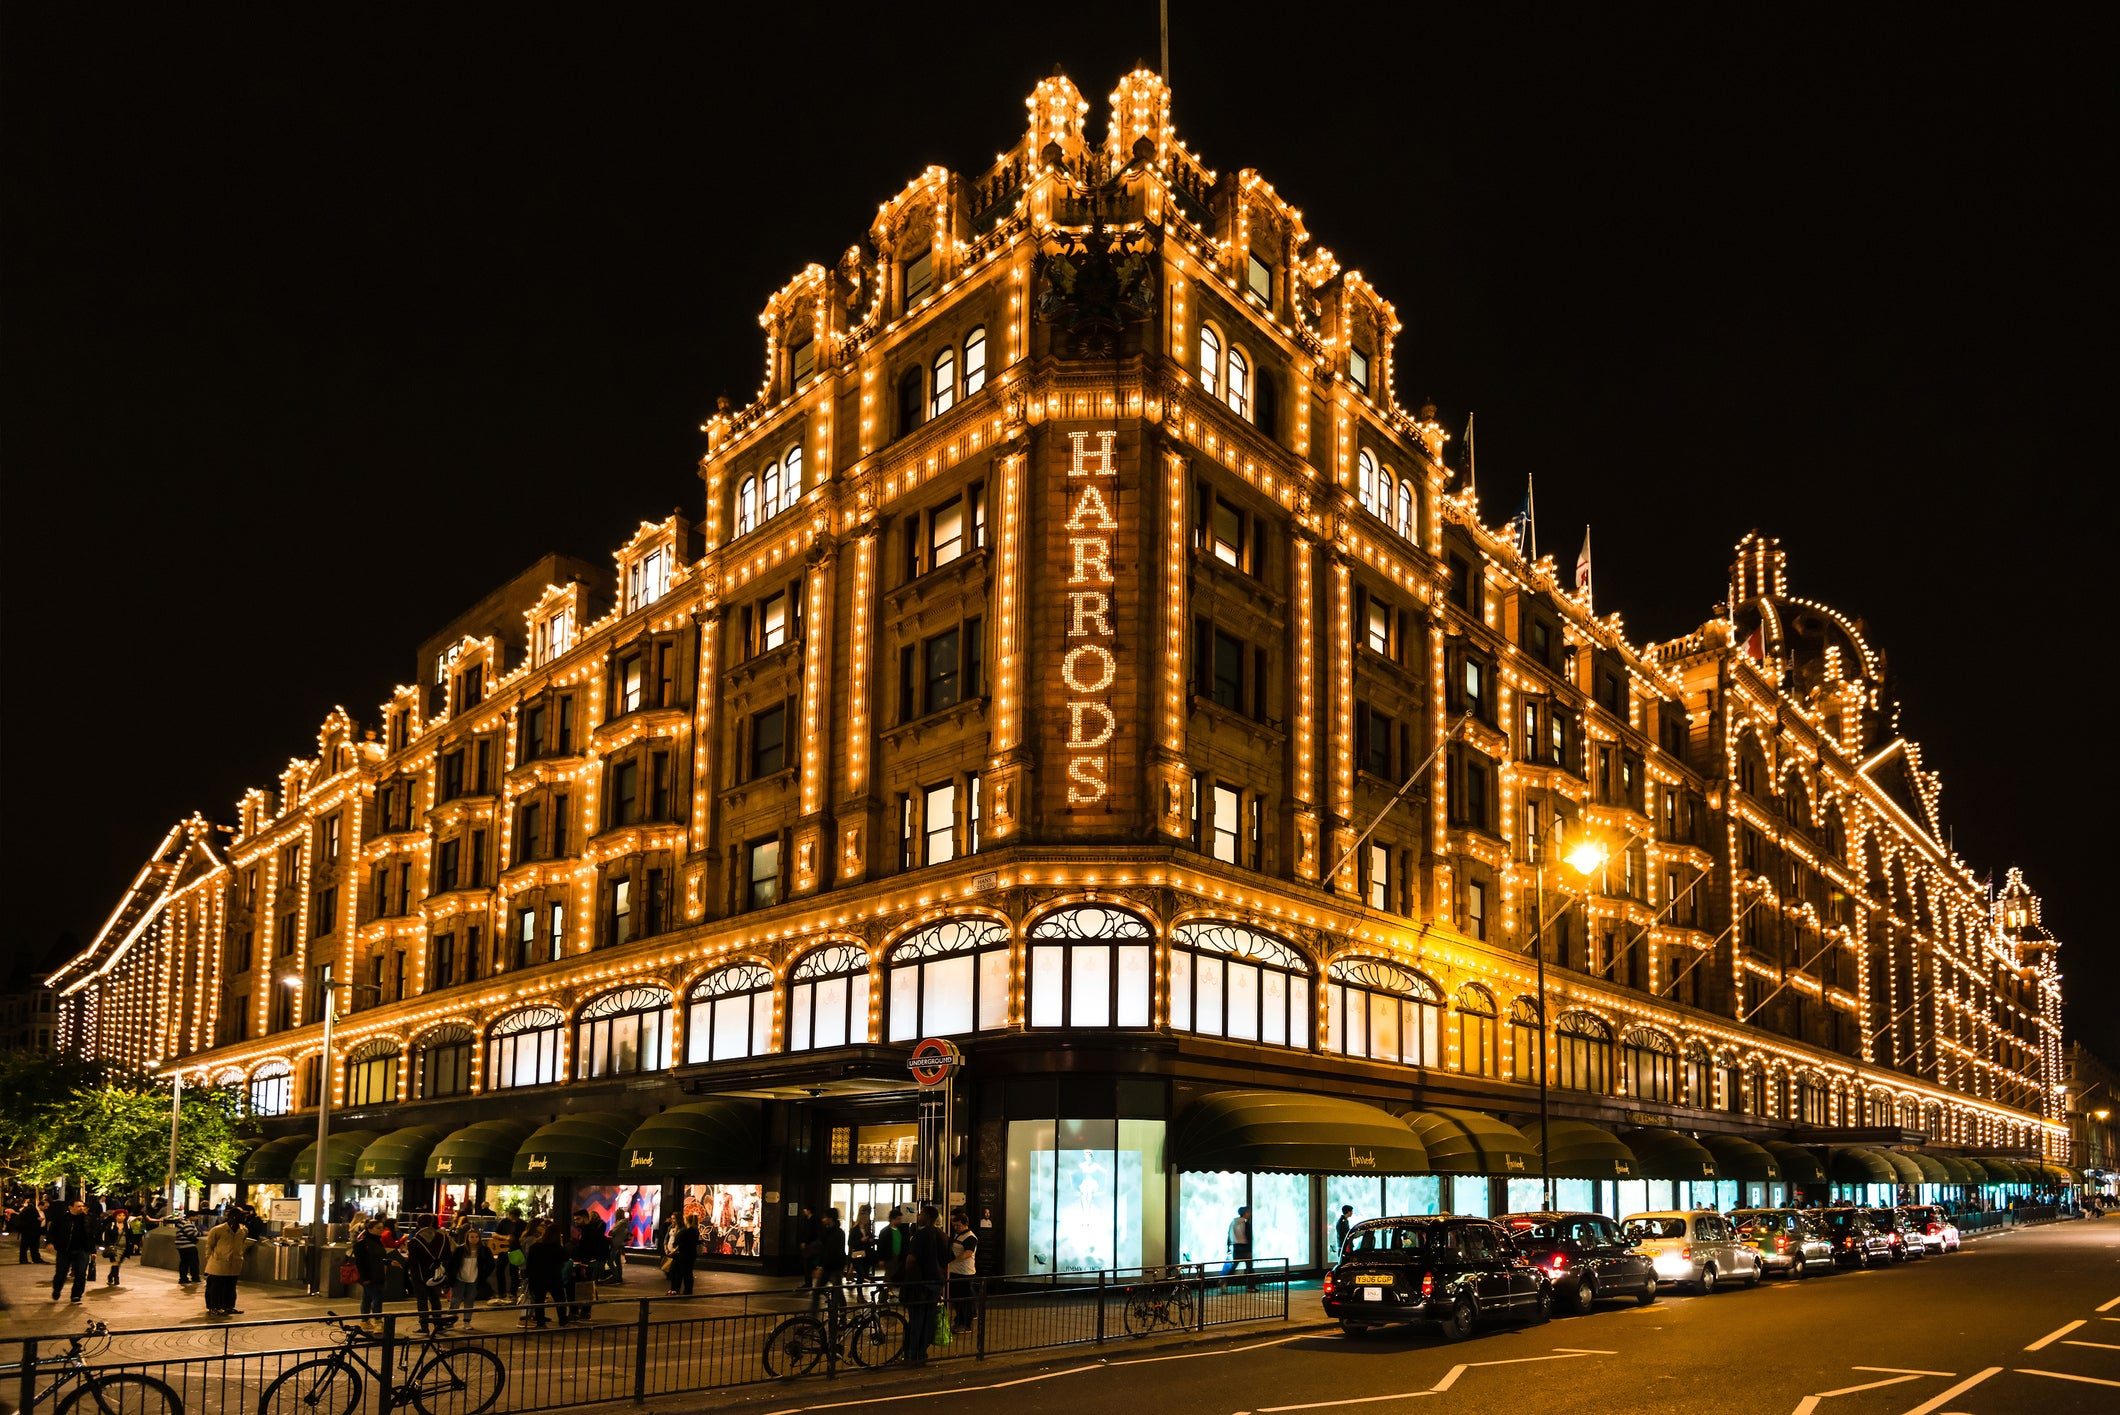 American Express gives Platinum cardholders £100 to spend at Harrods